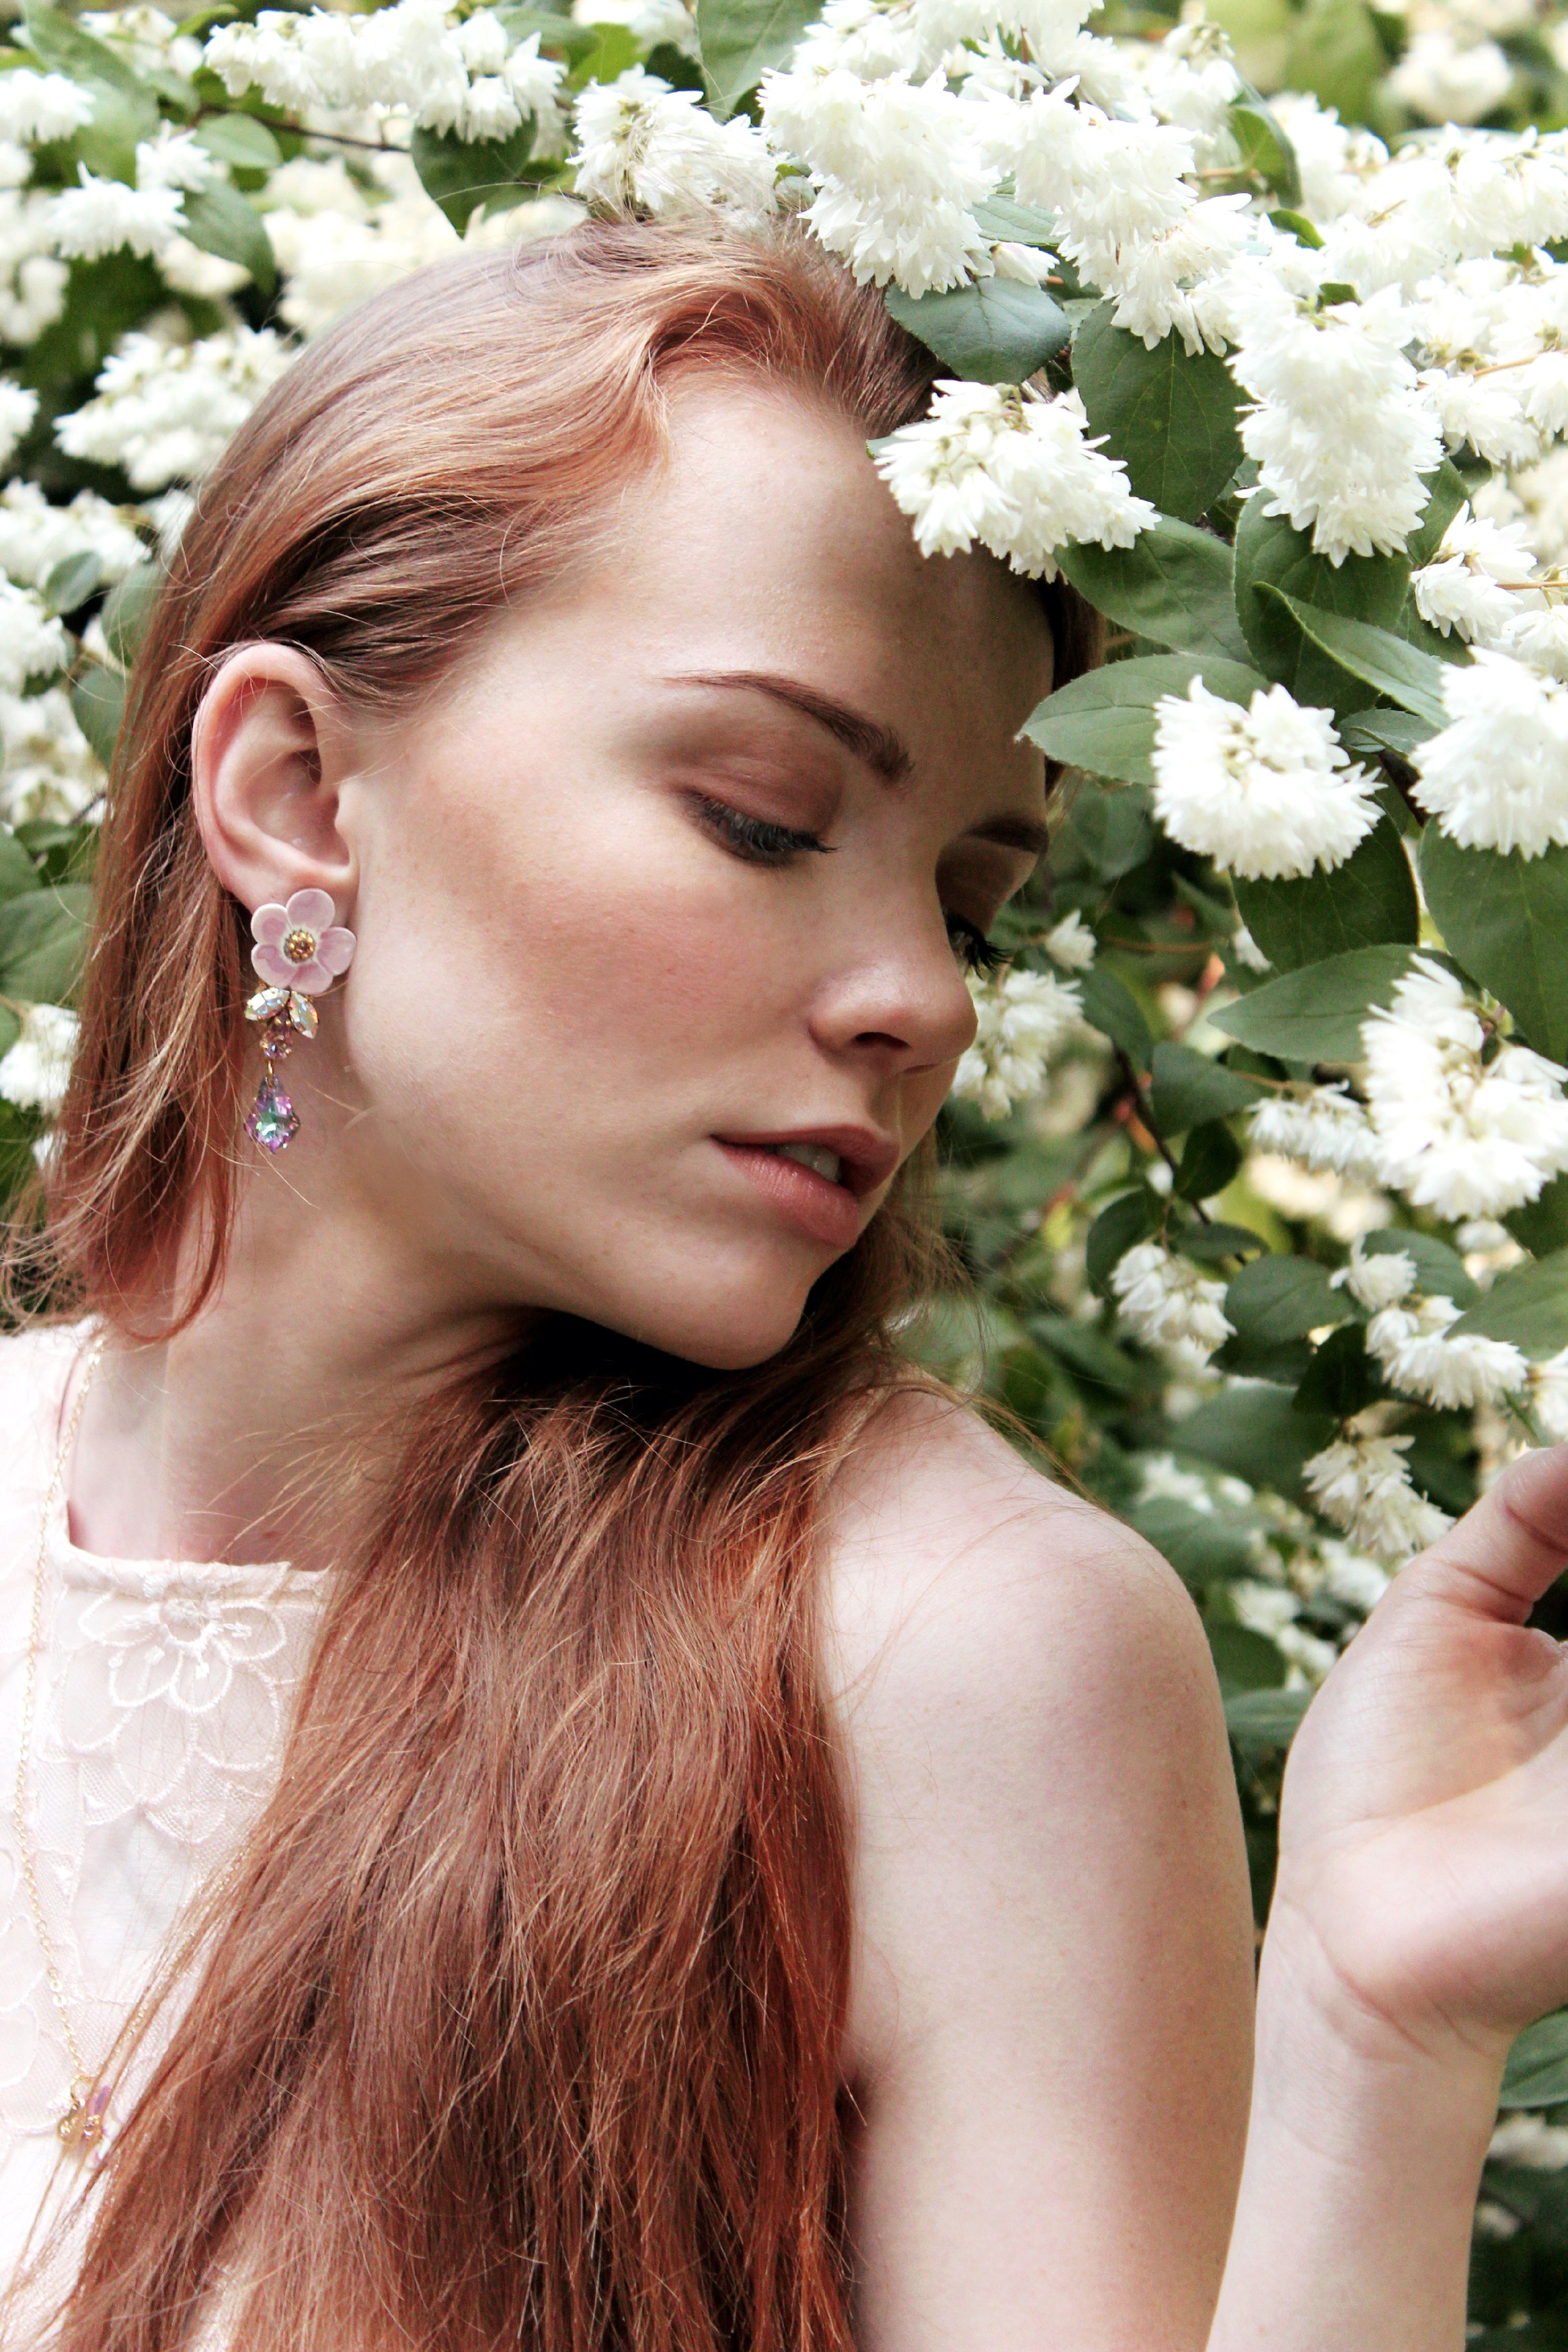 Secret Garden girl - Romantic Shoot ADV #LULIartbijoux #jewelry ...